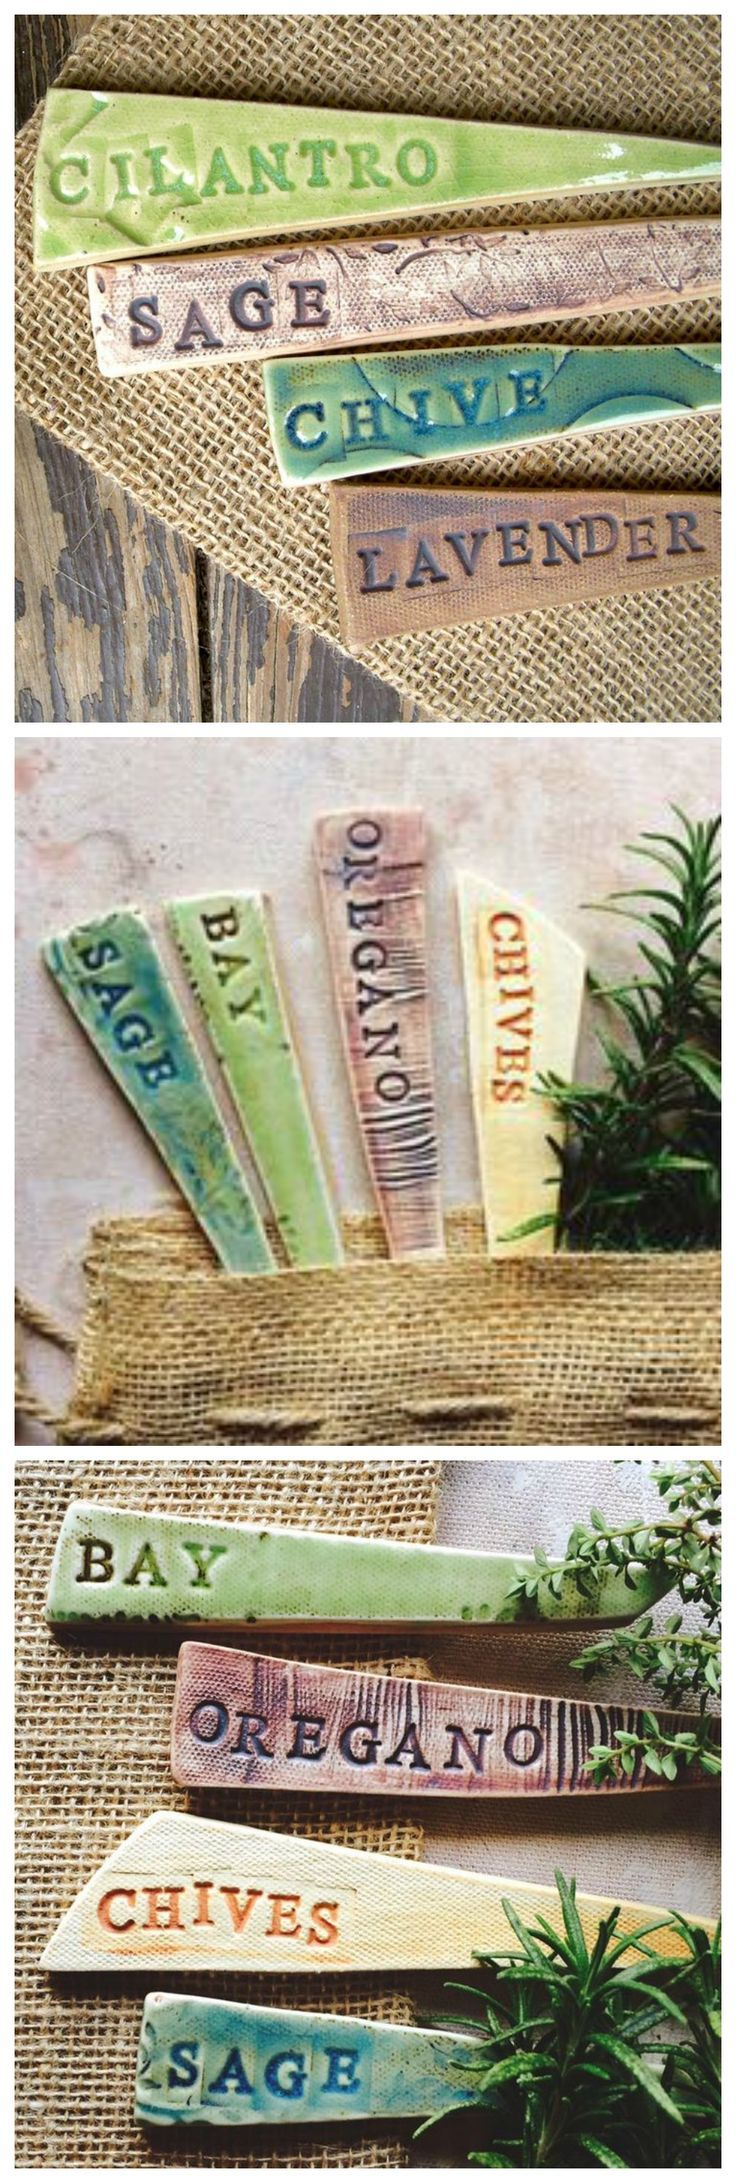 English garden plant labels - Ceramic Herb Garden Marker Set Herb Markersplant